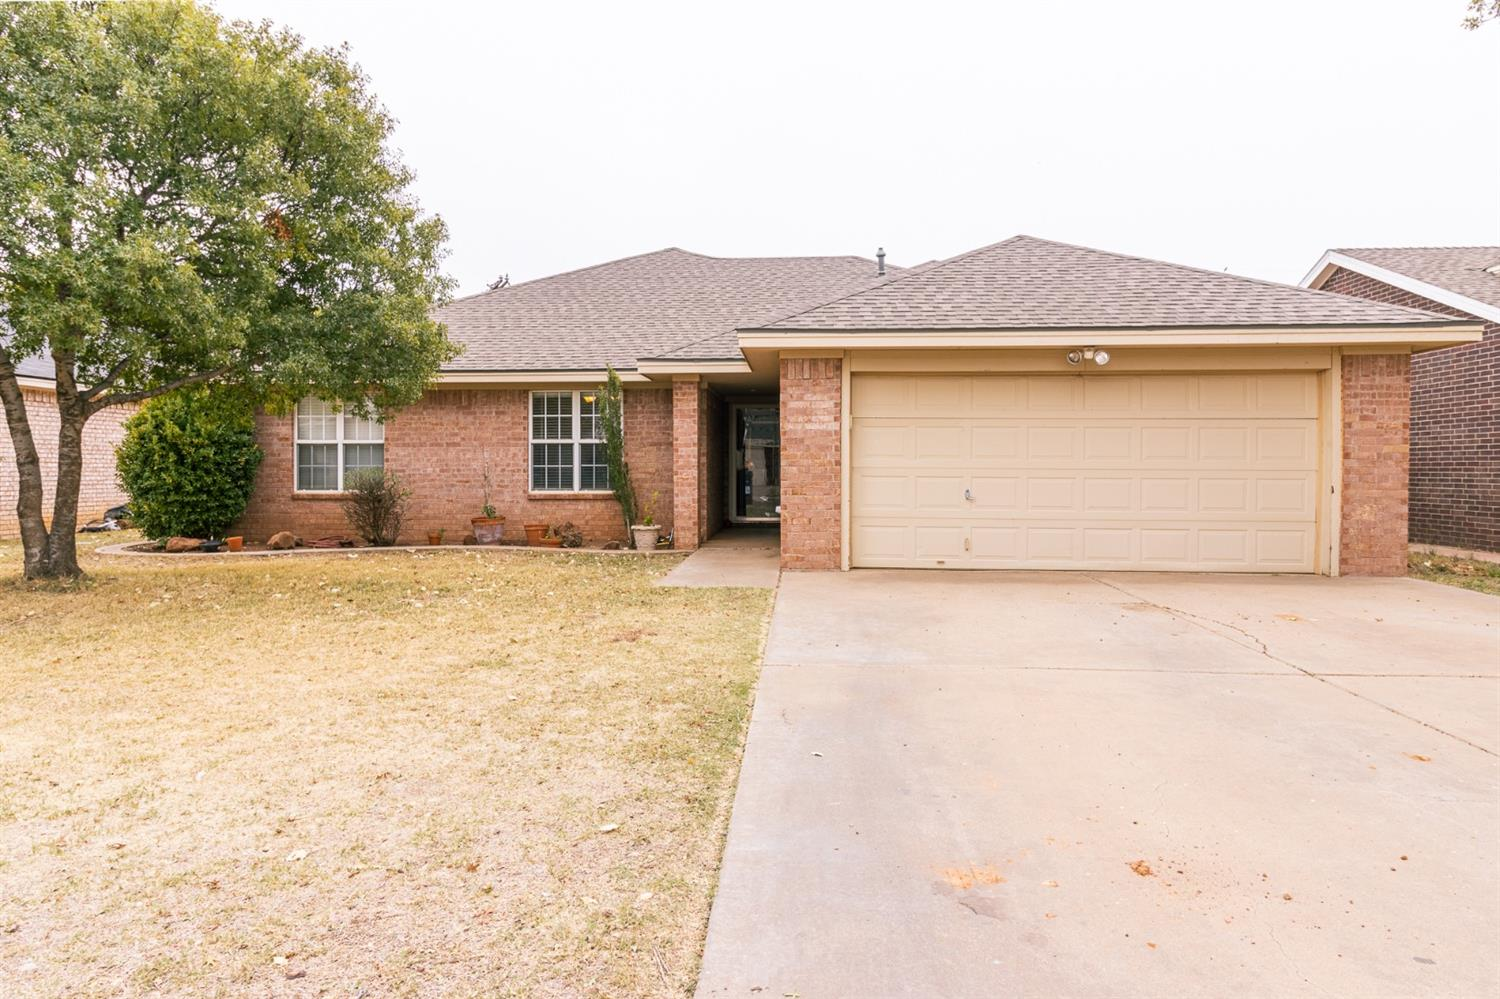 This beautiful home is located on an established street in sought after Shallowater! The kitchen features a large island perfect for entertaining, granite countertops and a spacious pantry. The isolated master showcases double closets, a soaking tub and double sinks. A huge bonus is the basement with a half bath and an extra room that could be used as an office/playroom/second living space, the options are limitless. This home also has abundant storage, an upgraded Carrier Infinity AC System, an attached storage room with electricity and so much more. Call for your showing today!